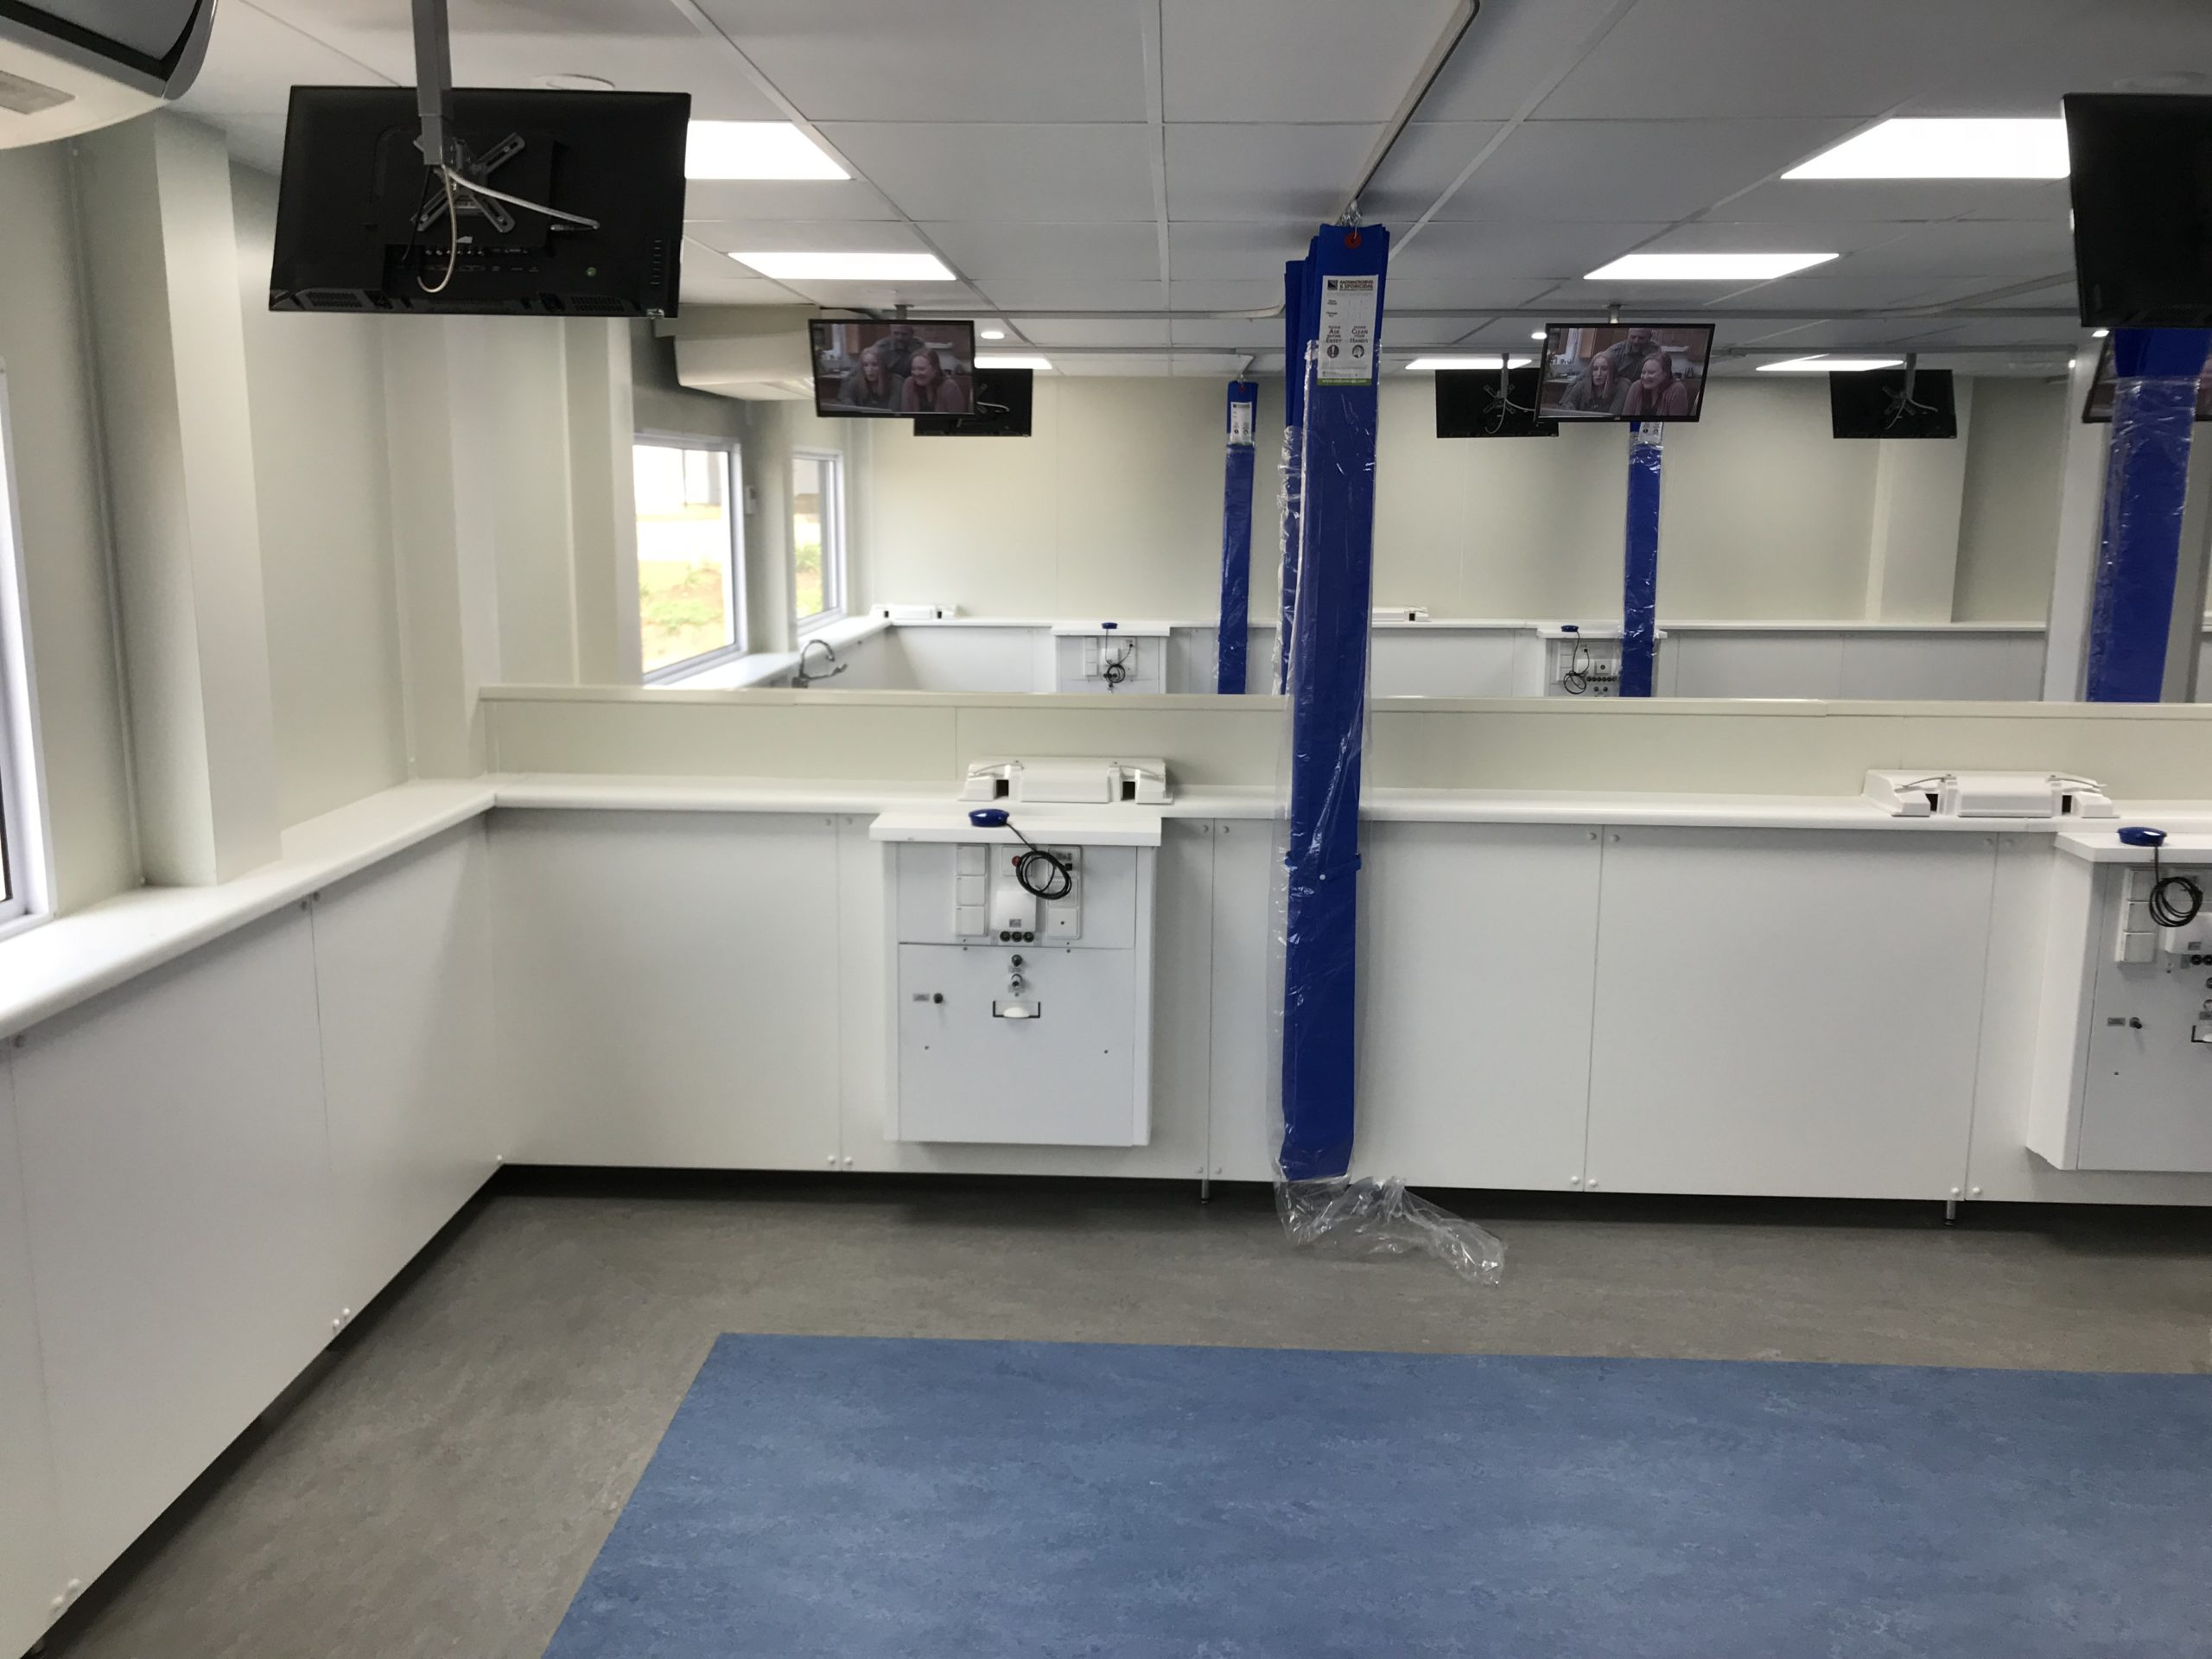 Isolation Rooms & Mobile Clinics